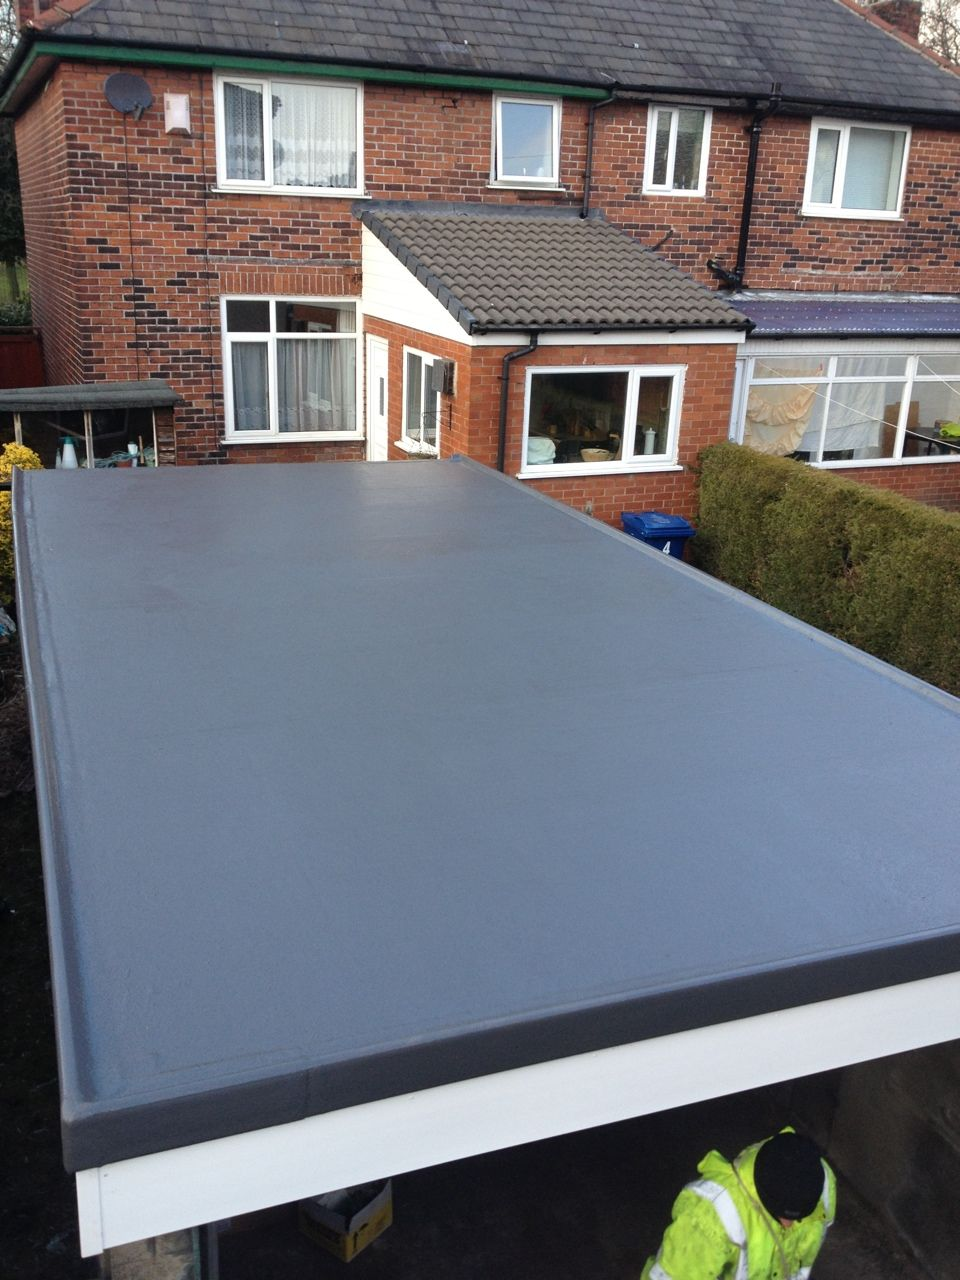 This Garage Roof In Bury Was Completely Transformed When We Installed A Grp Roofing System A Long Time Hardwearin Roofing Options Garage Roof Flat Roof Design